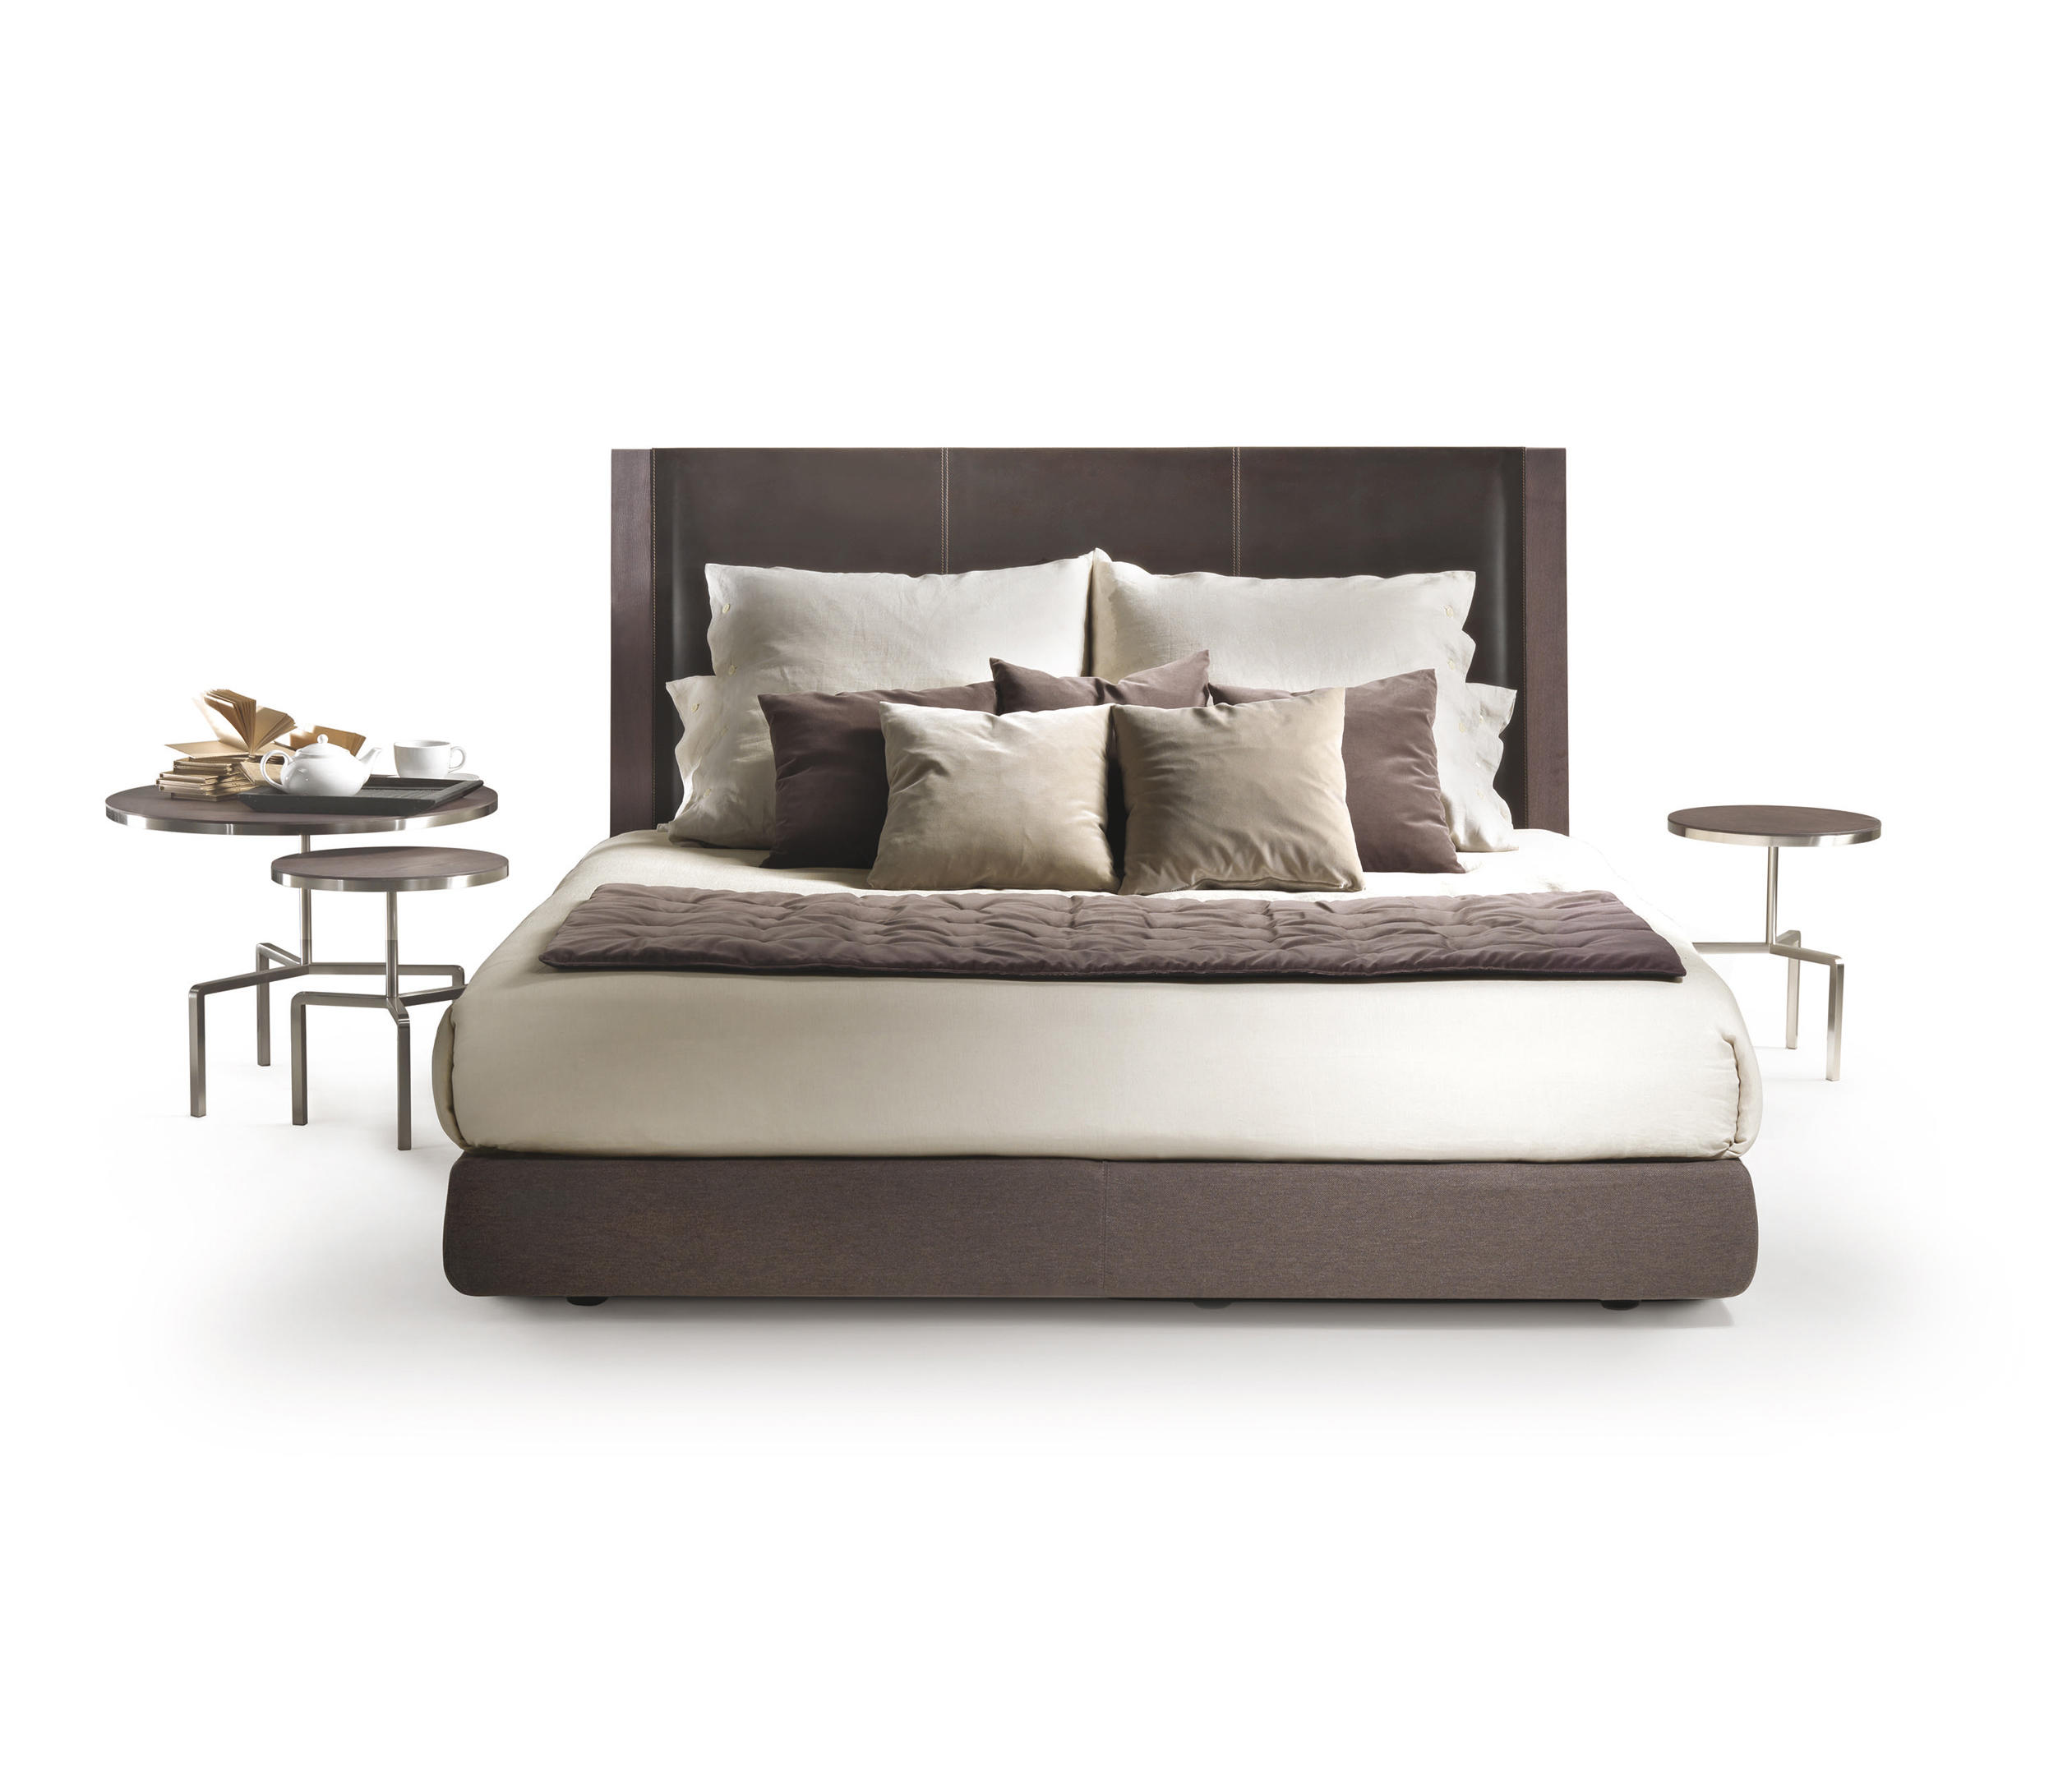 Margaret Bed Double Beds From Flexform Architonic